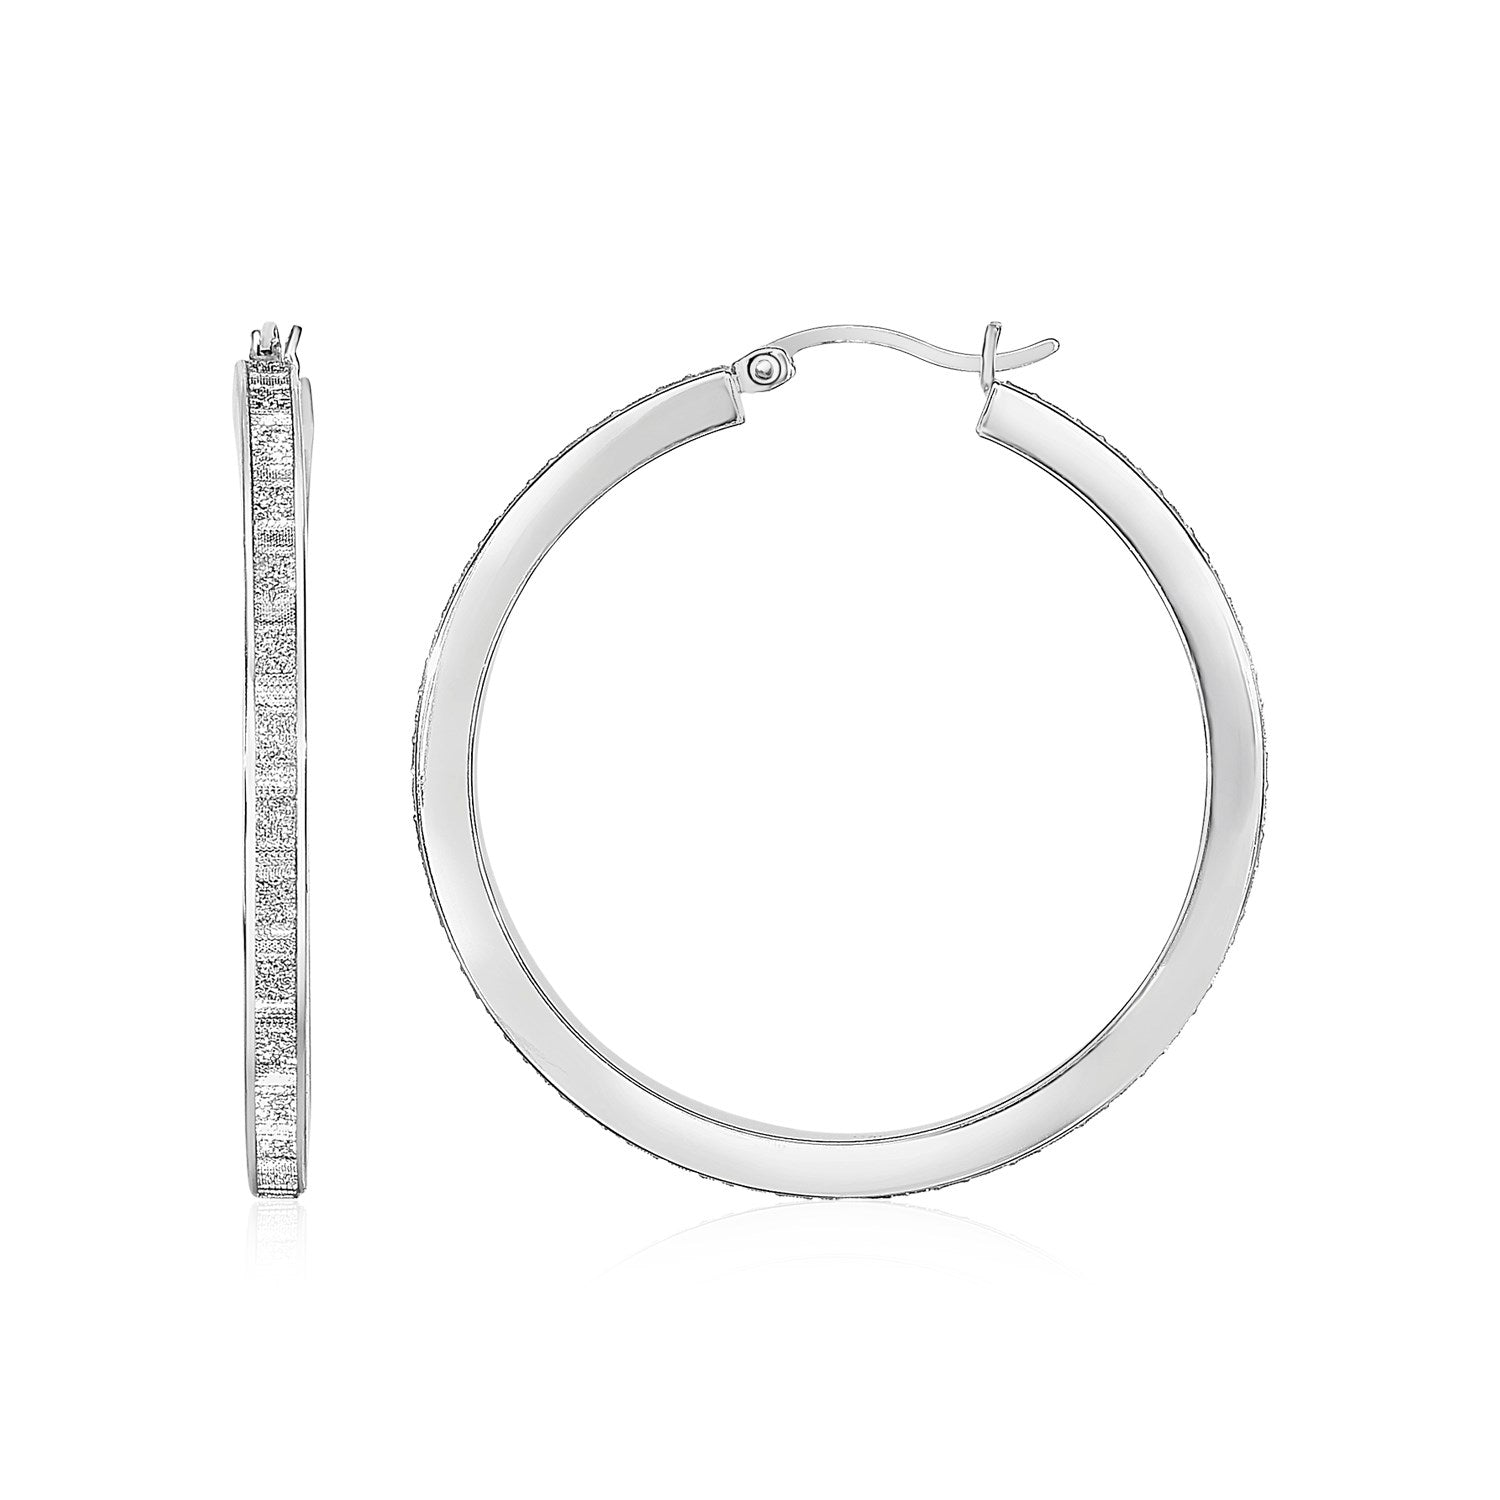 Glitter Textured Tube Hoop Earrings in Sterling Silver